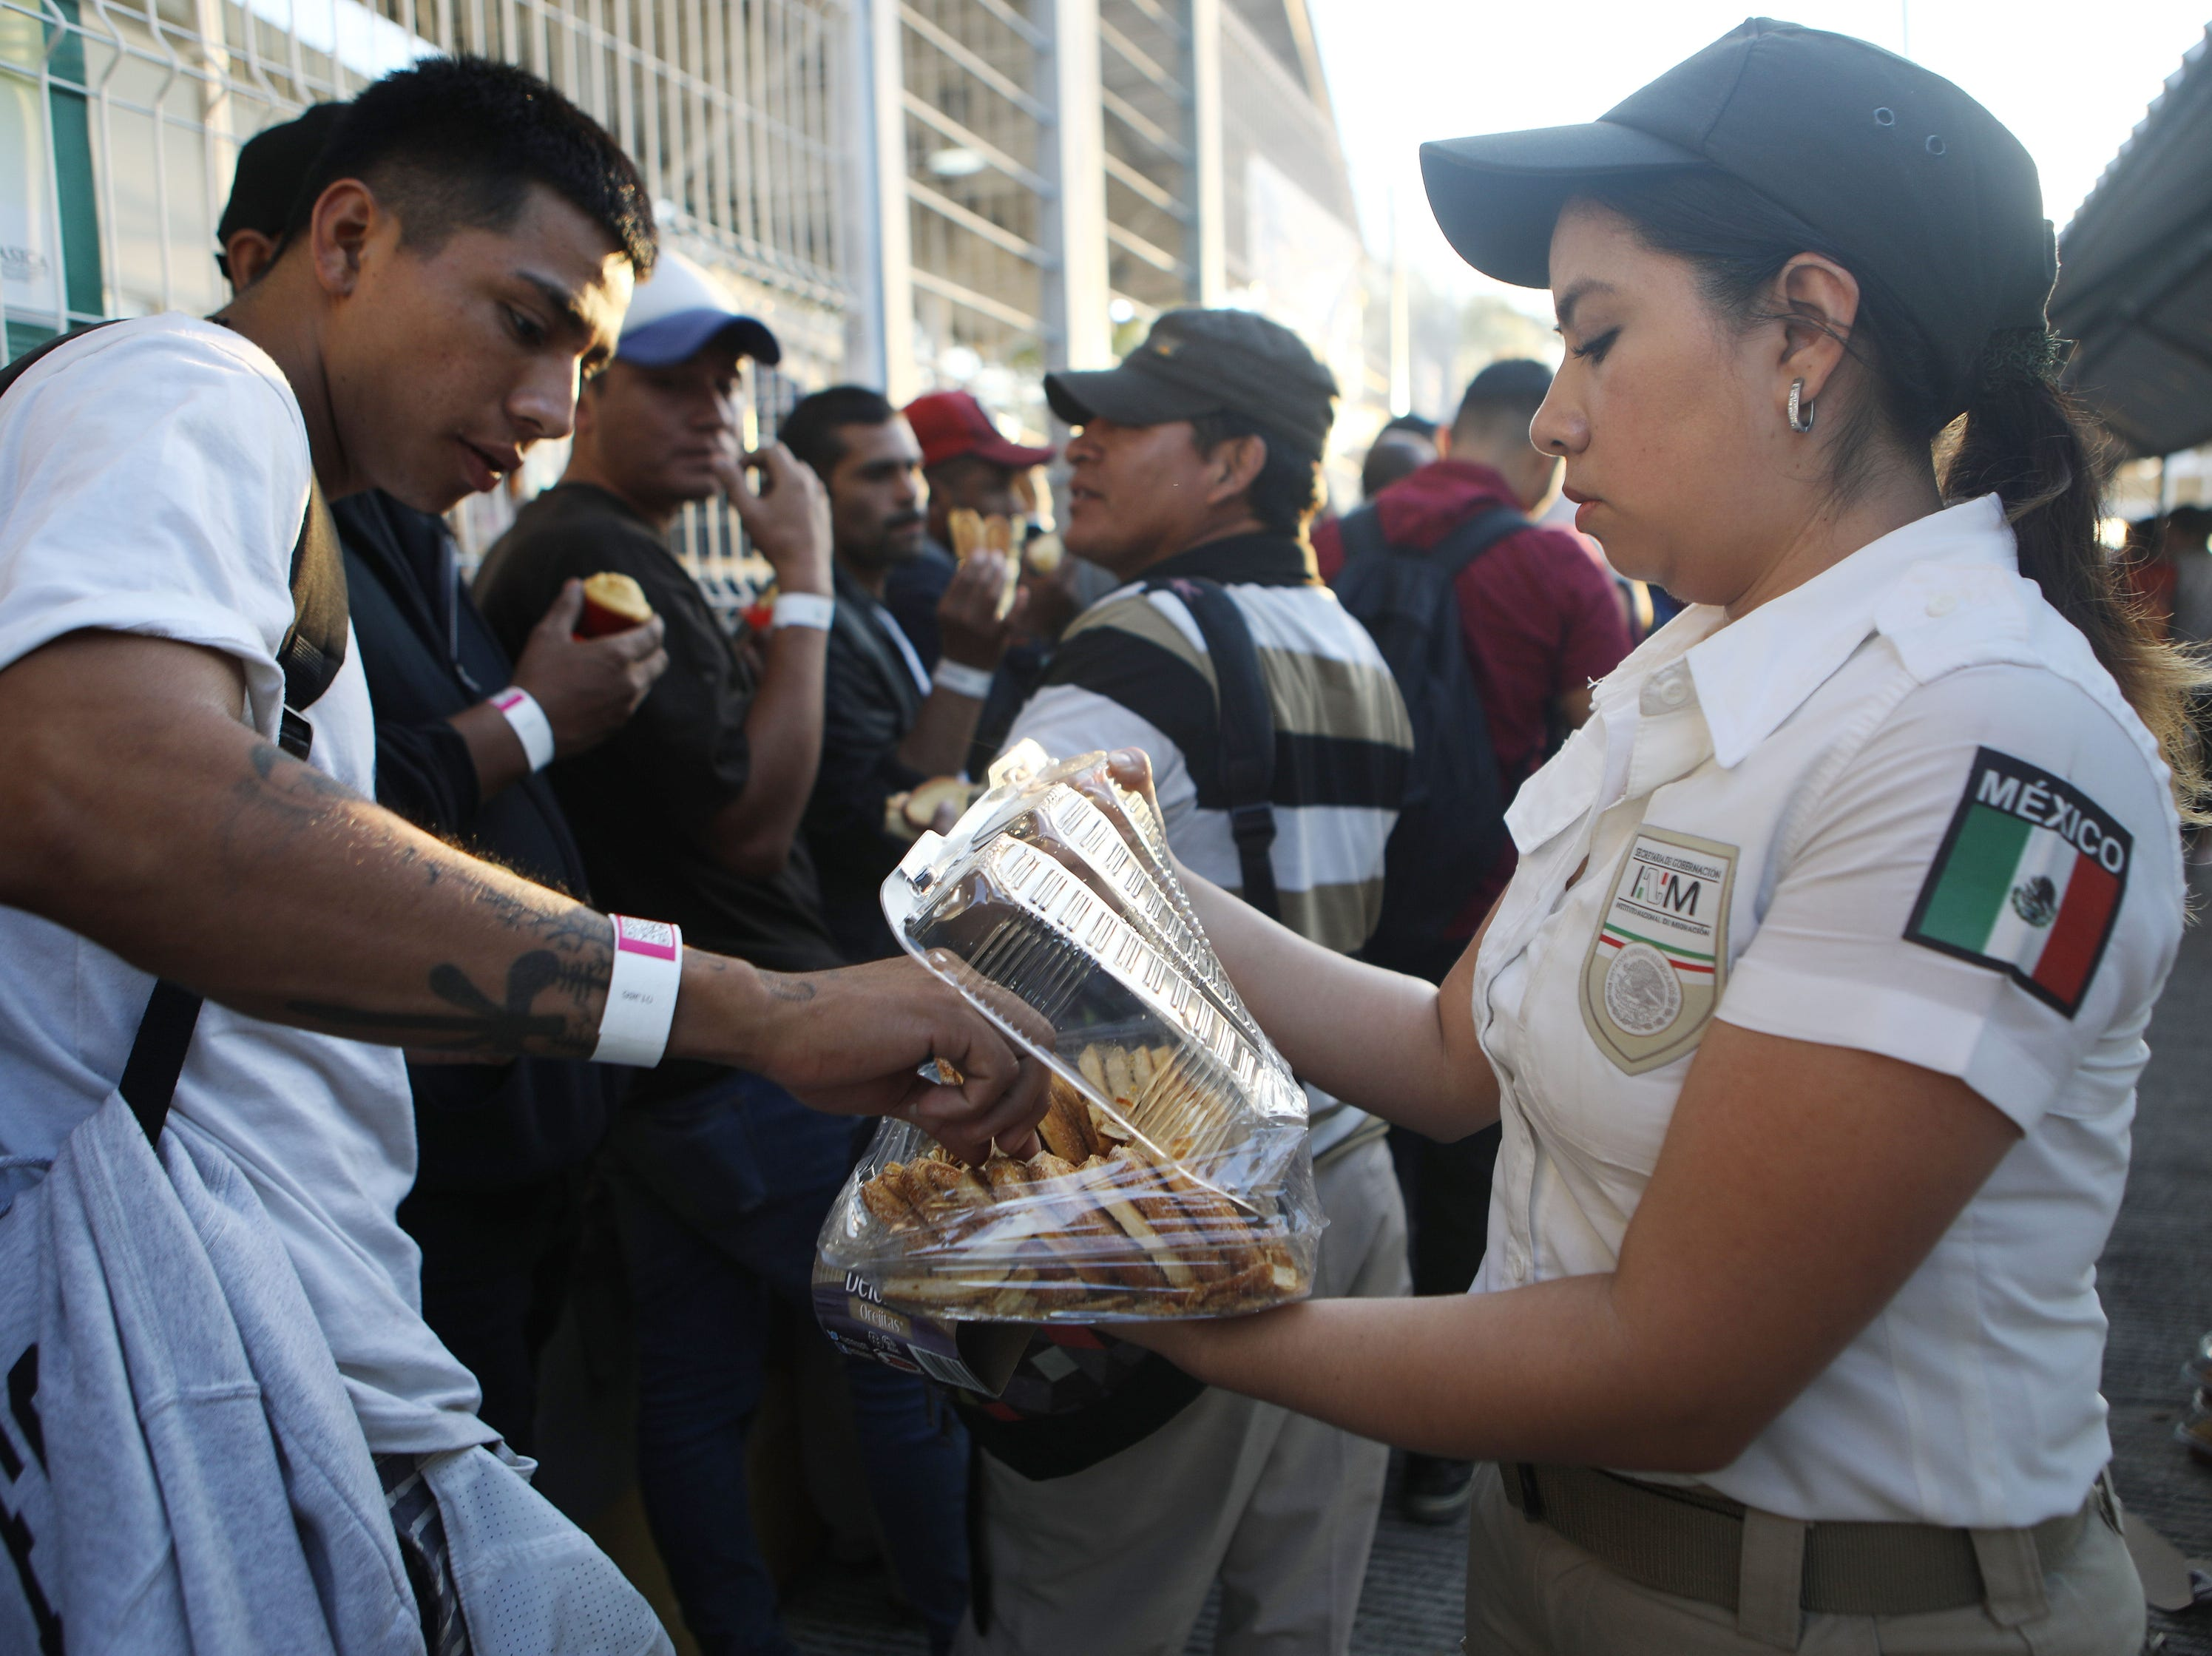 Central American migrants, part of a new 'migrant caravan', are given food by a Mexican immigration official after crossing a border bridge between Guatemala and Mexico to register at an immigration facility in Ciudad Hidalgo, Mexico.